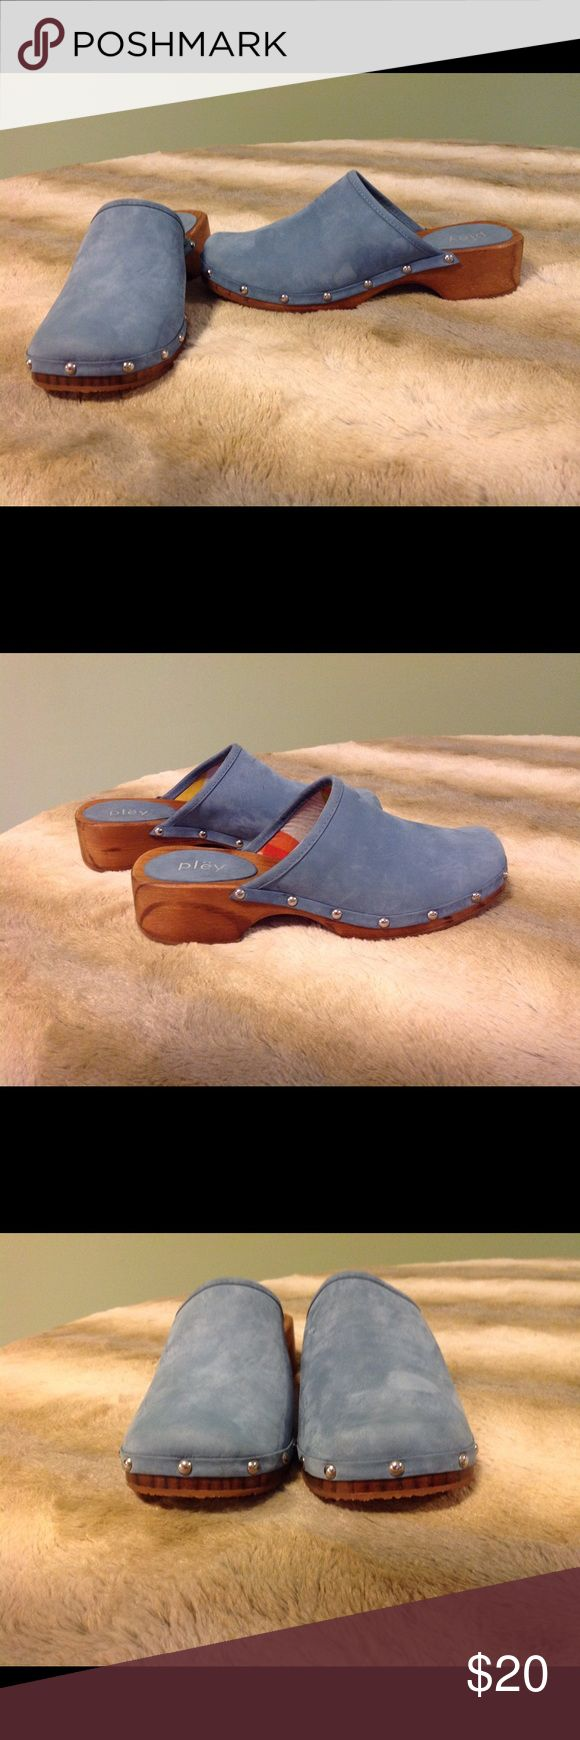 Pley clogs NWOB Pley clogs size 37. They are blue suede material with silver color studs. They are new without box. The original price was $98 but I paid $19.99. Pley Shoes Mules & Clogs